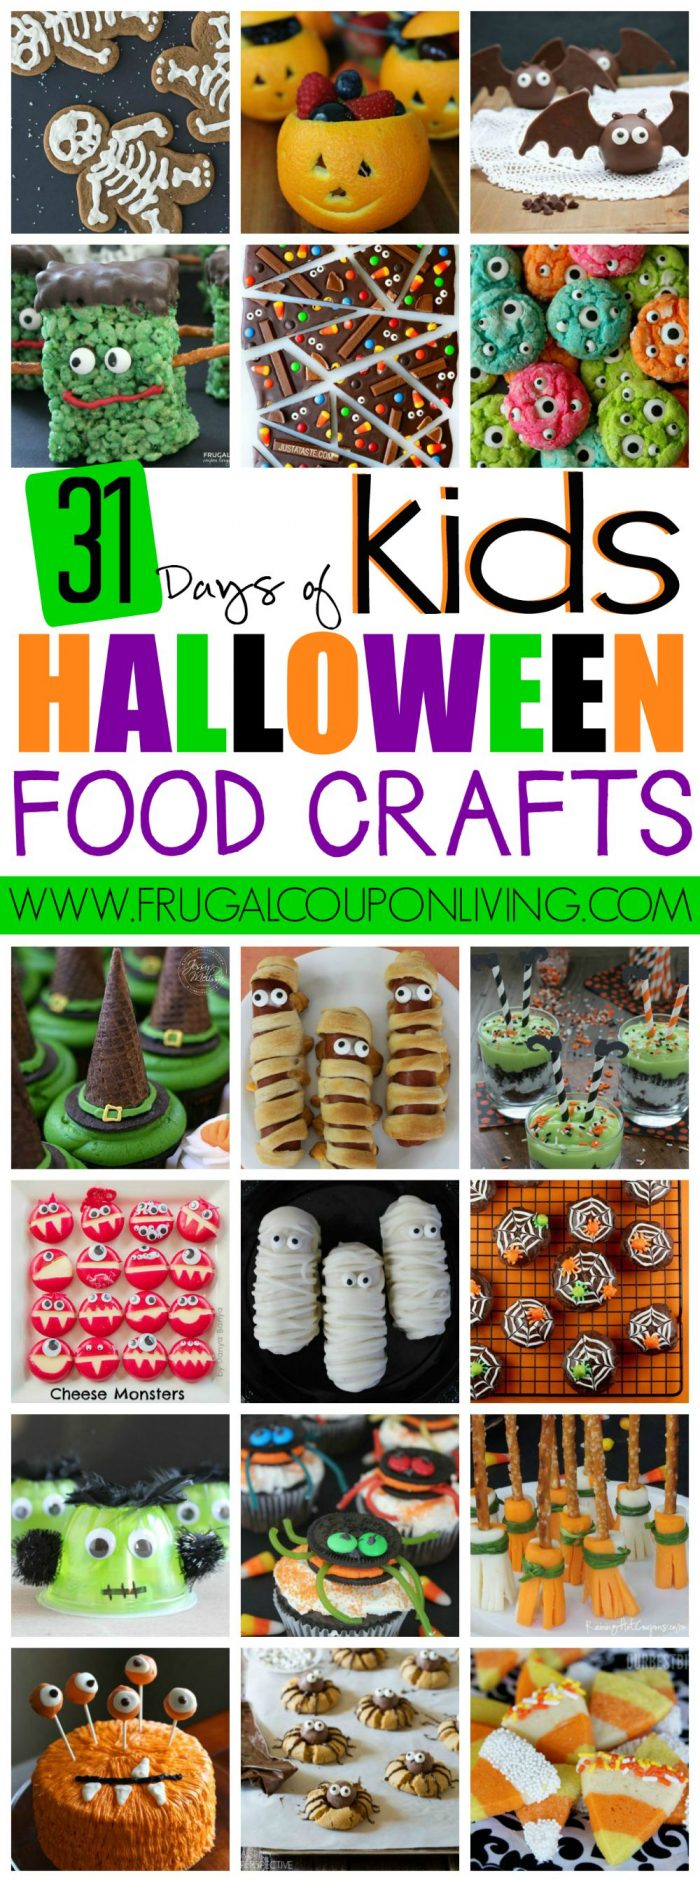 31-days-halloween-food-crafts-frugal-coupon-living